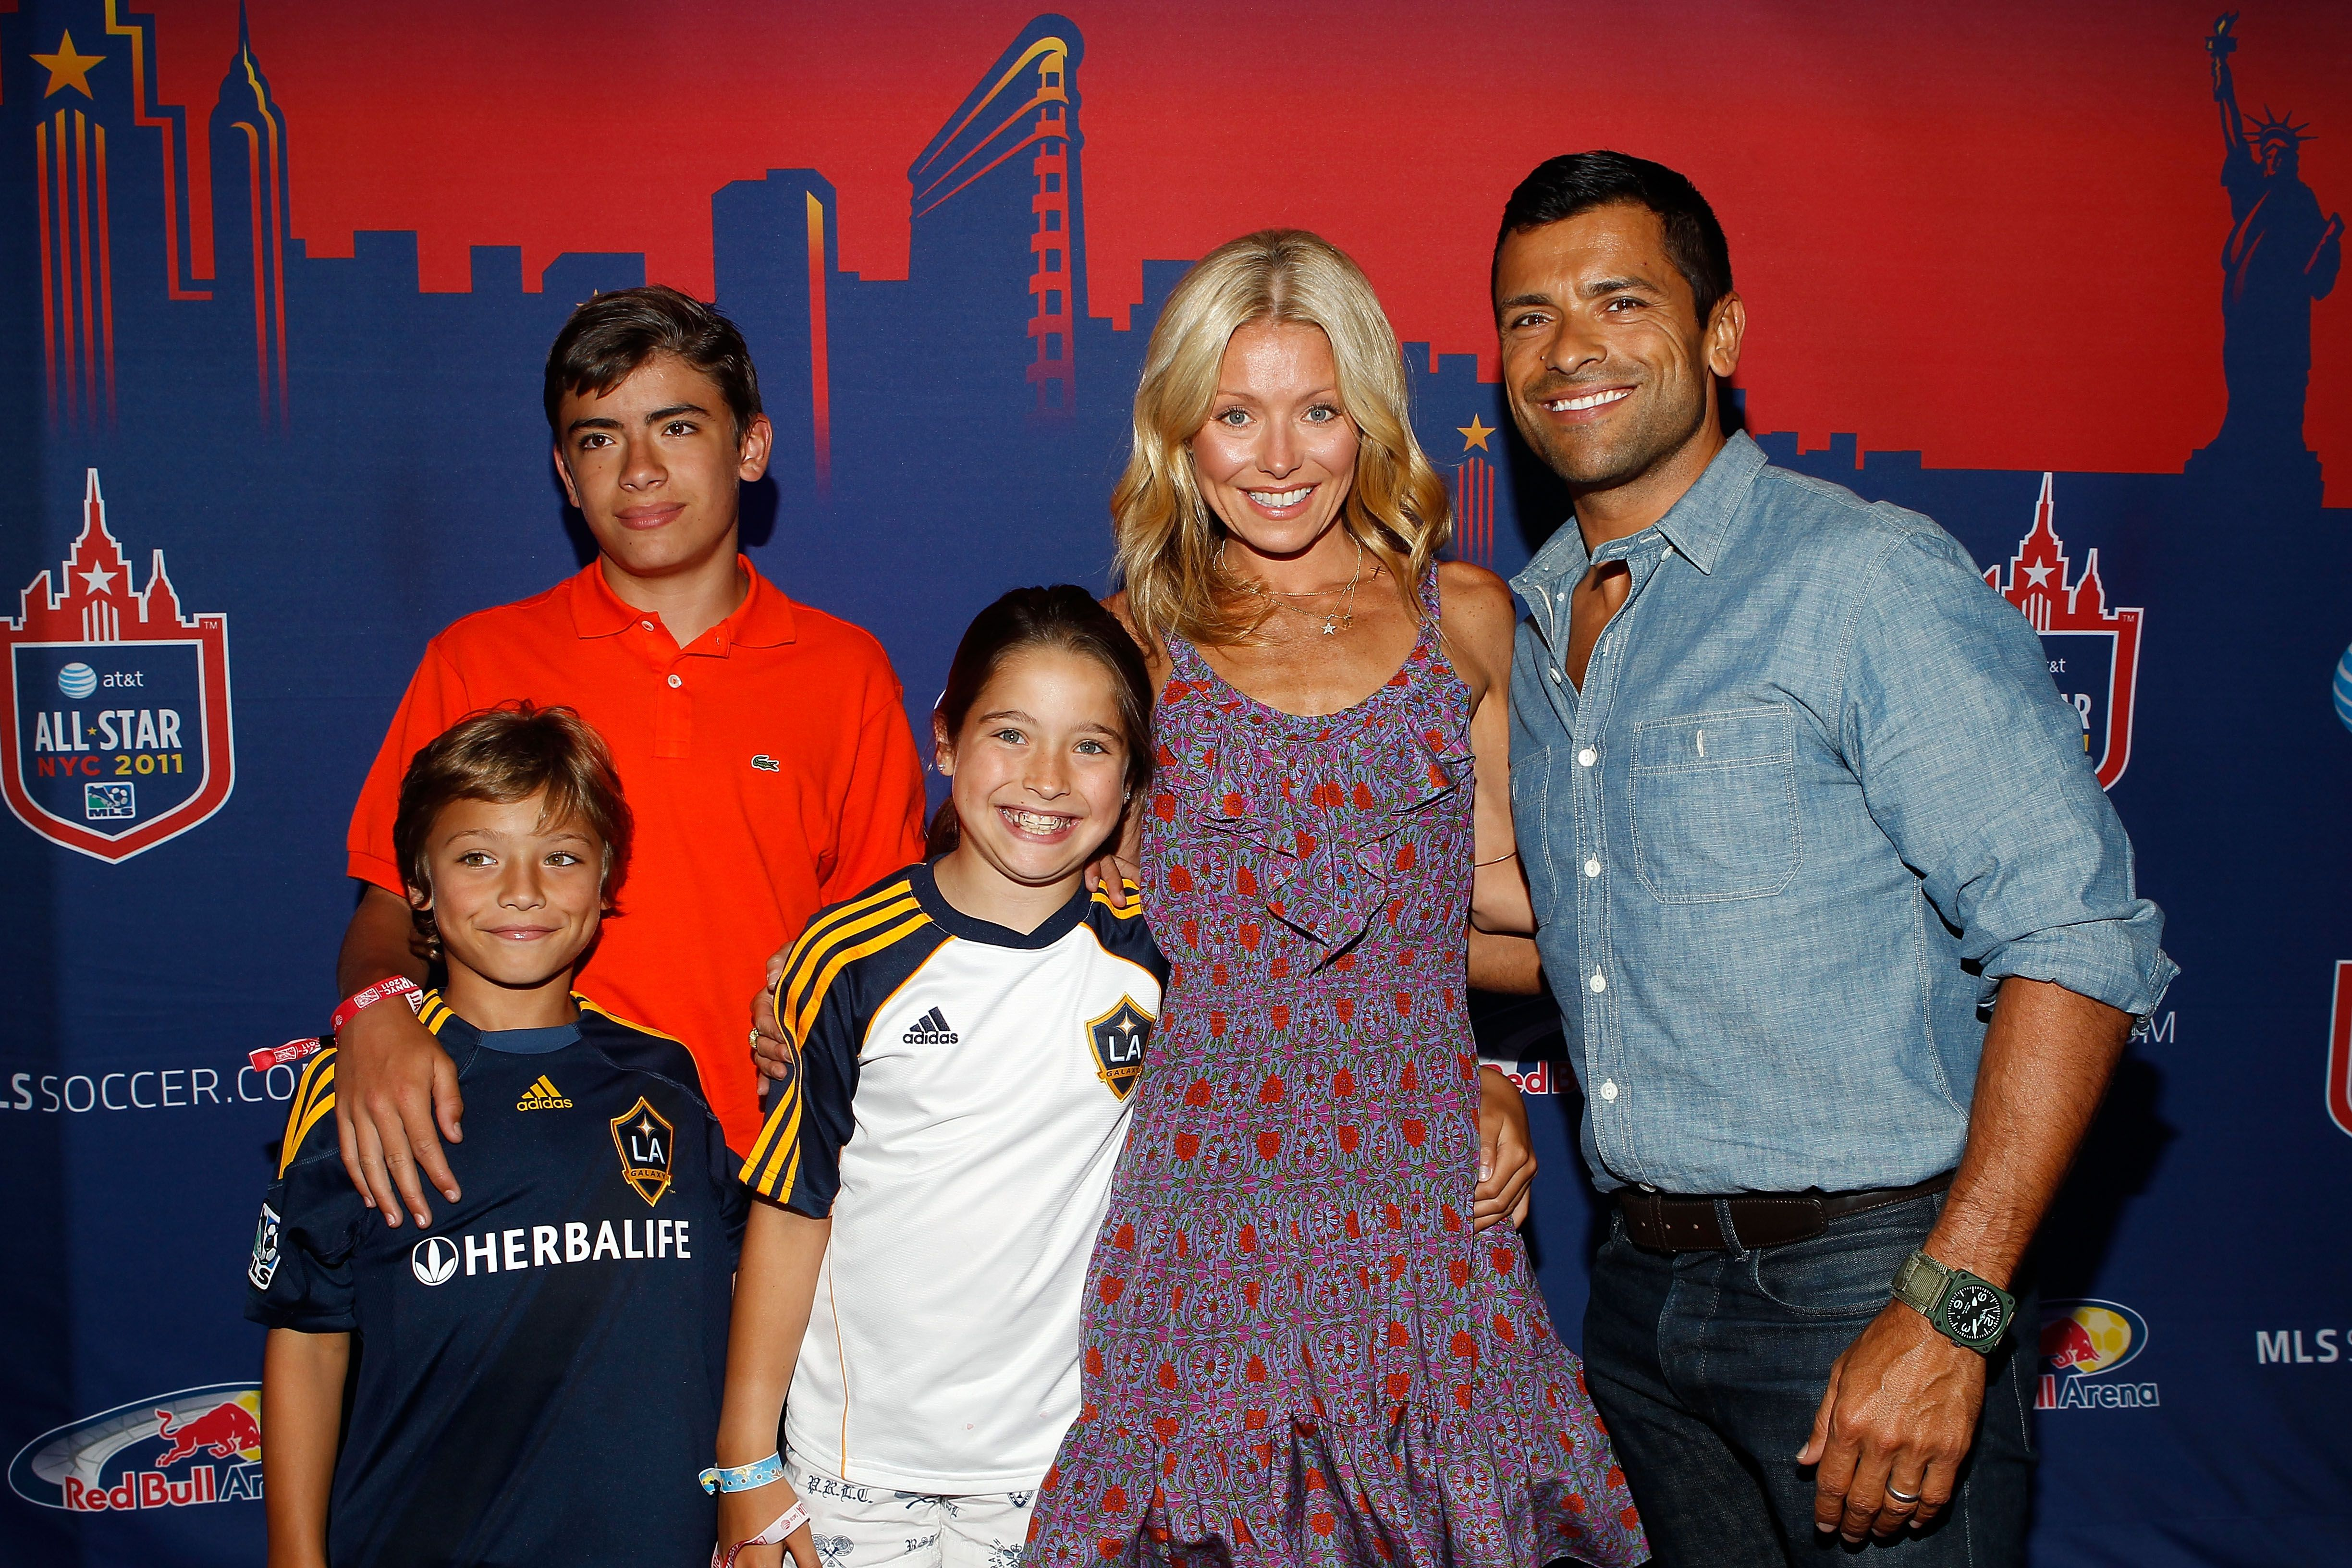 Kelly Ripa, Mark Consuelos and the kids at an MLS All-Star Game in 2011 in Harrison, New Jersey | Source: Getty Images